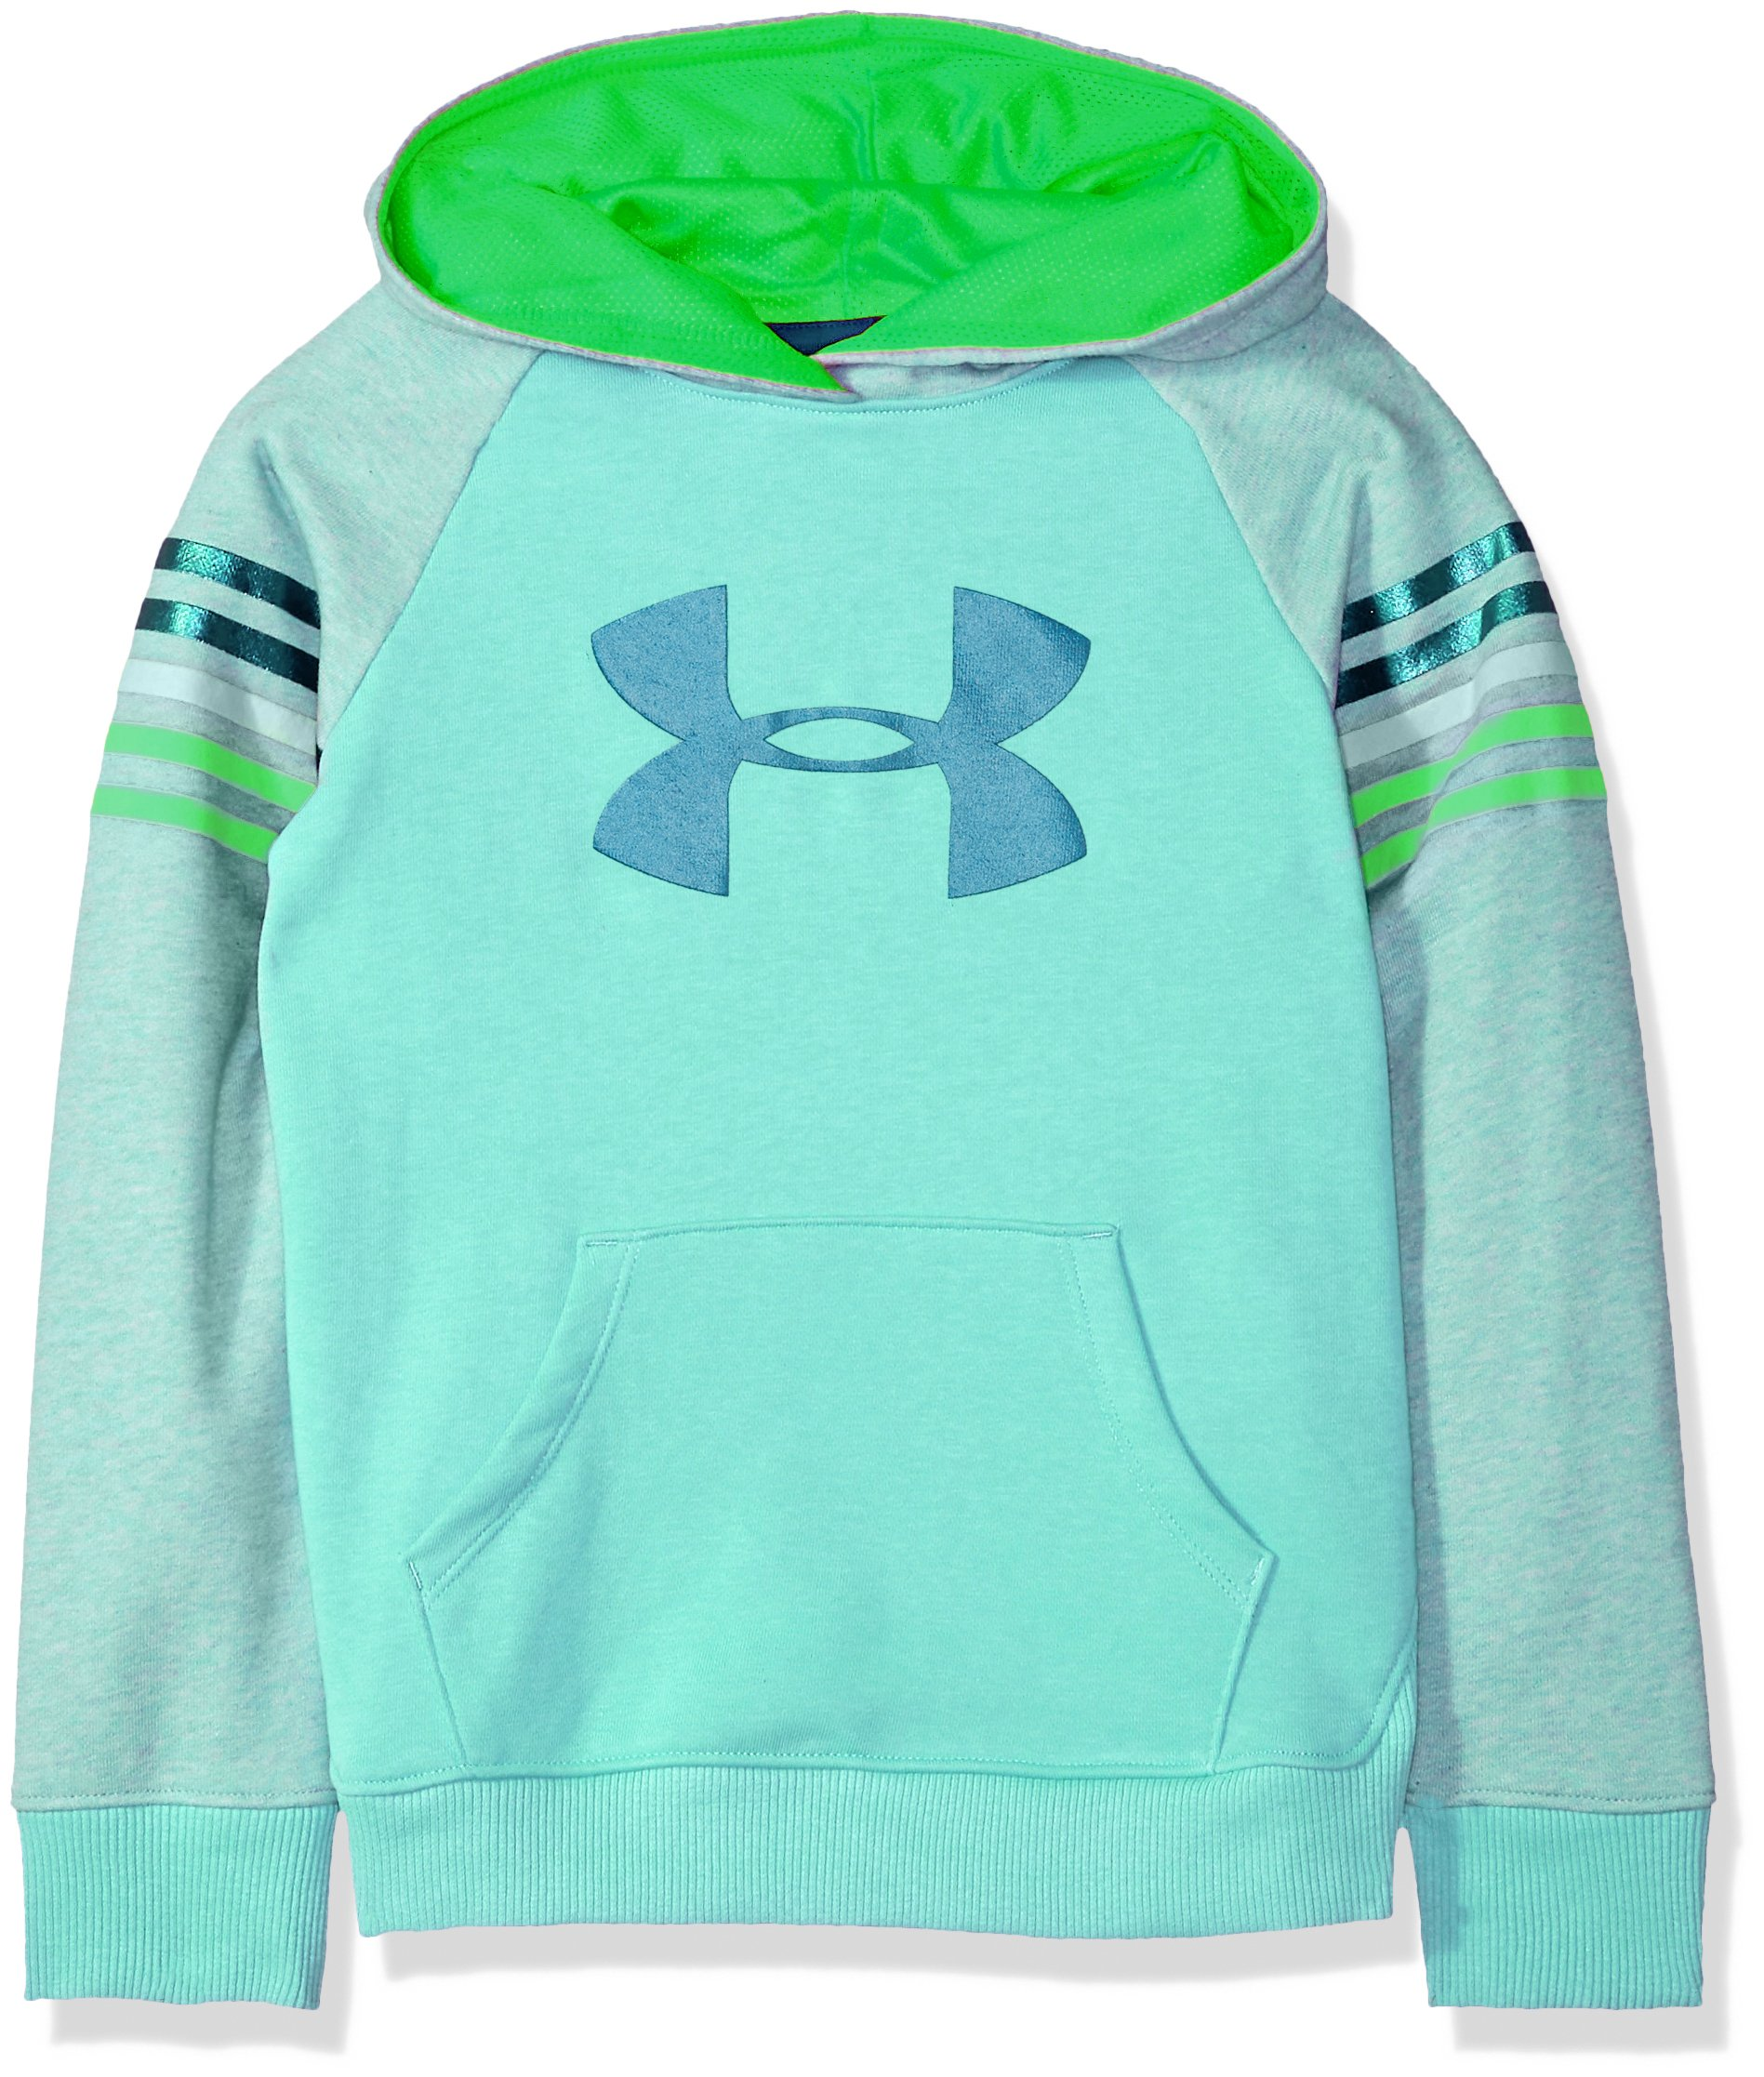 Under Armour Girls Favorite Terry Hoody, Tropical Tide (425)/Moroccan Blue, Youth Small by Under Armour